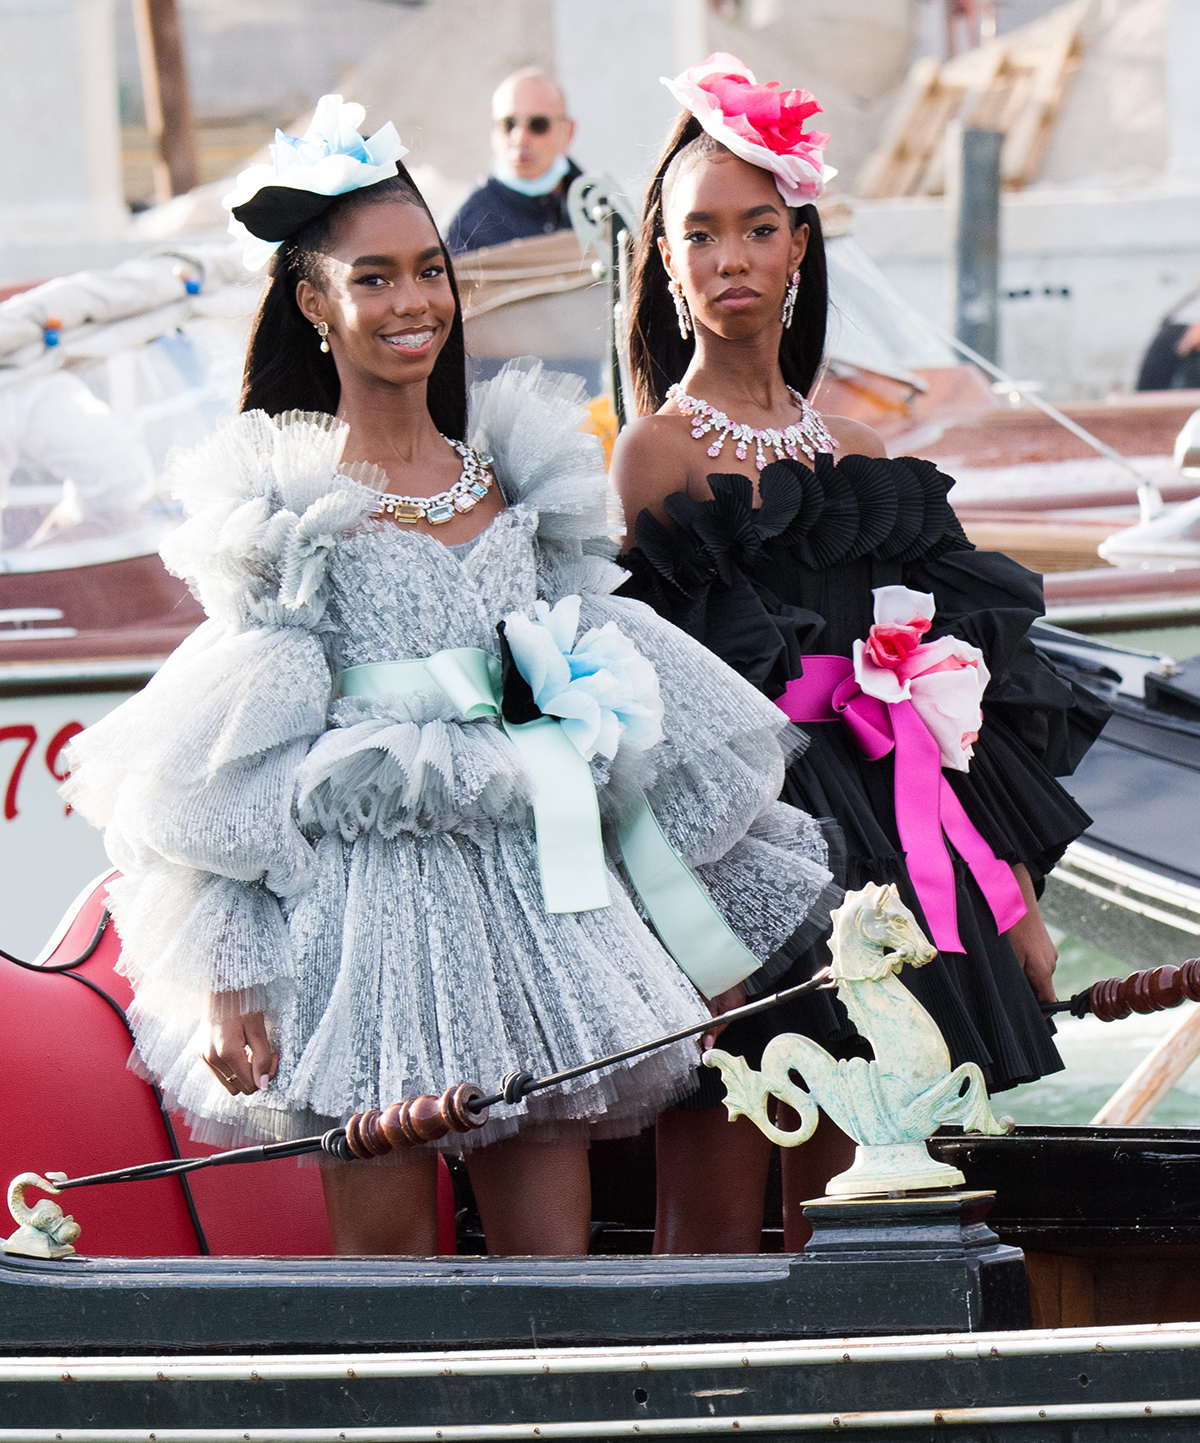 D'Lila Star Combs and Jessie James Combs are seen during the Dolce&Gabbana Alta Moda show on August 29, 2021 in Venice, Italy.